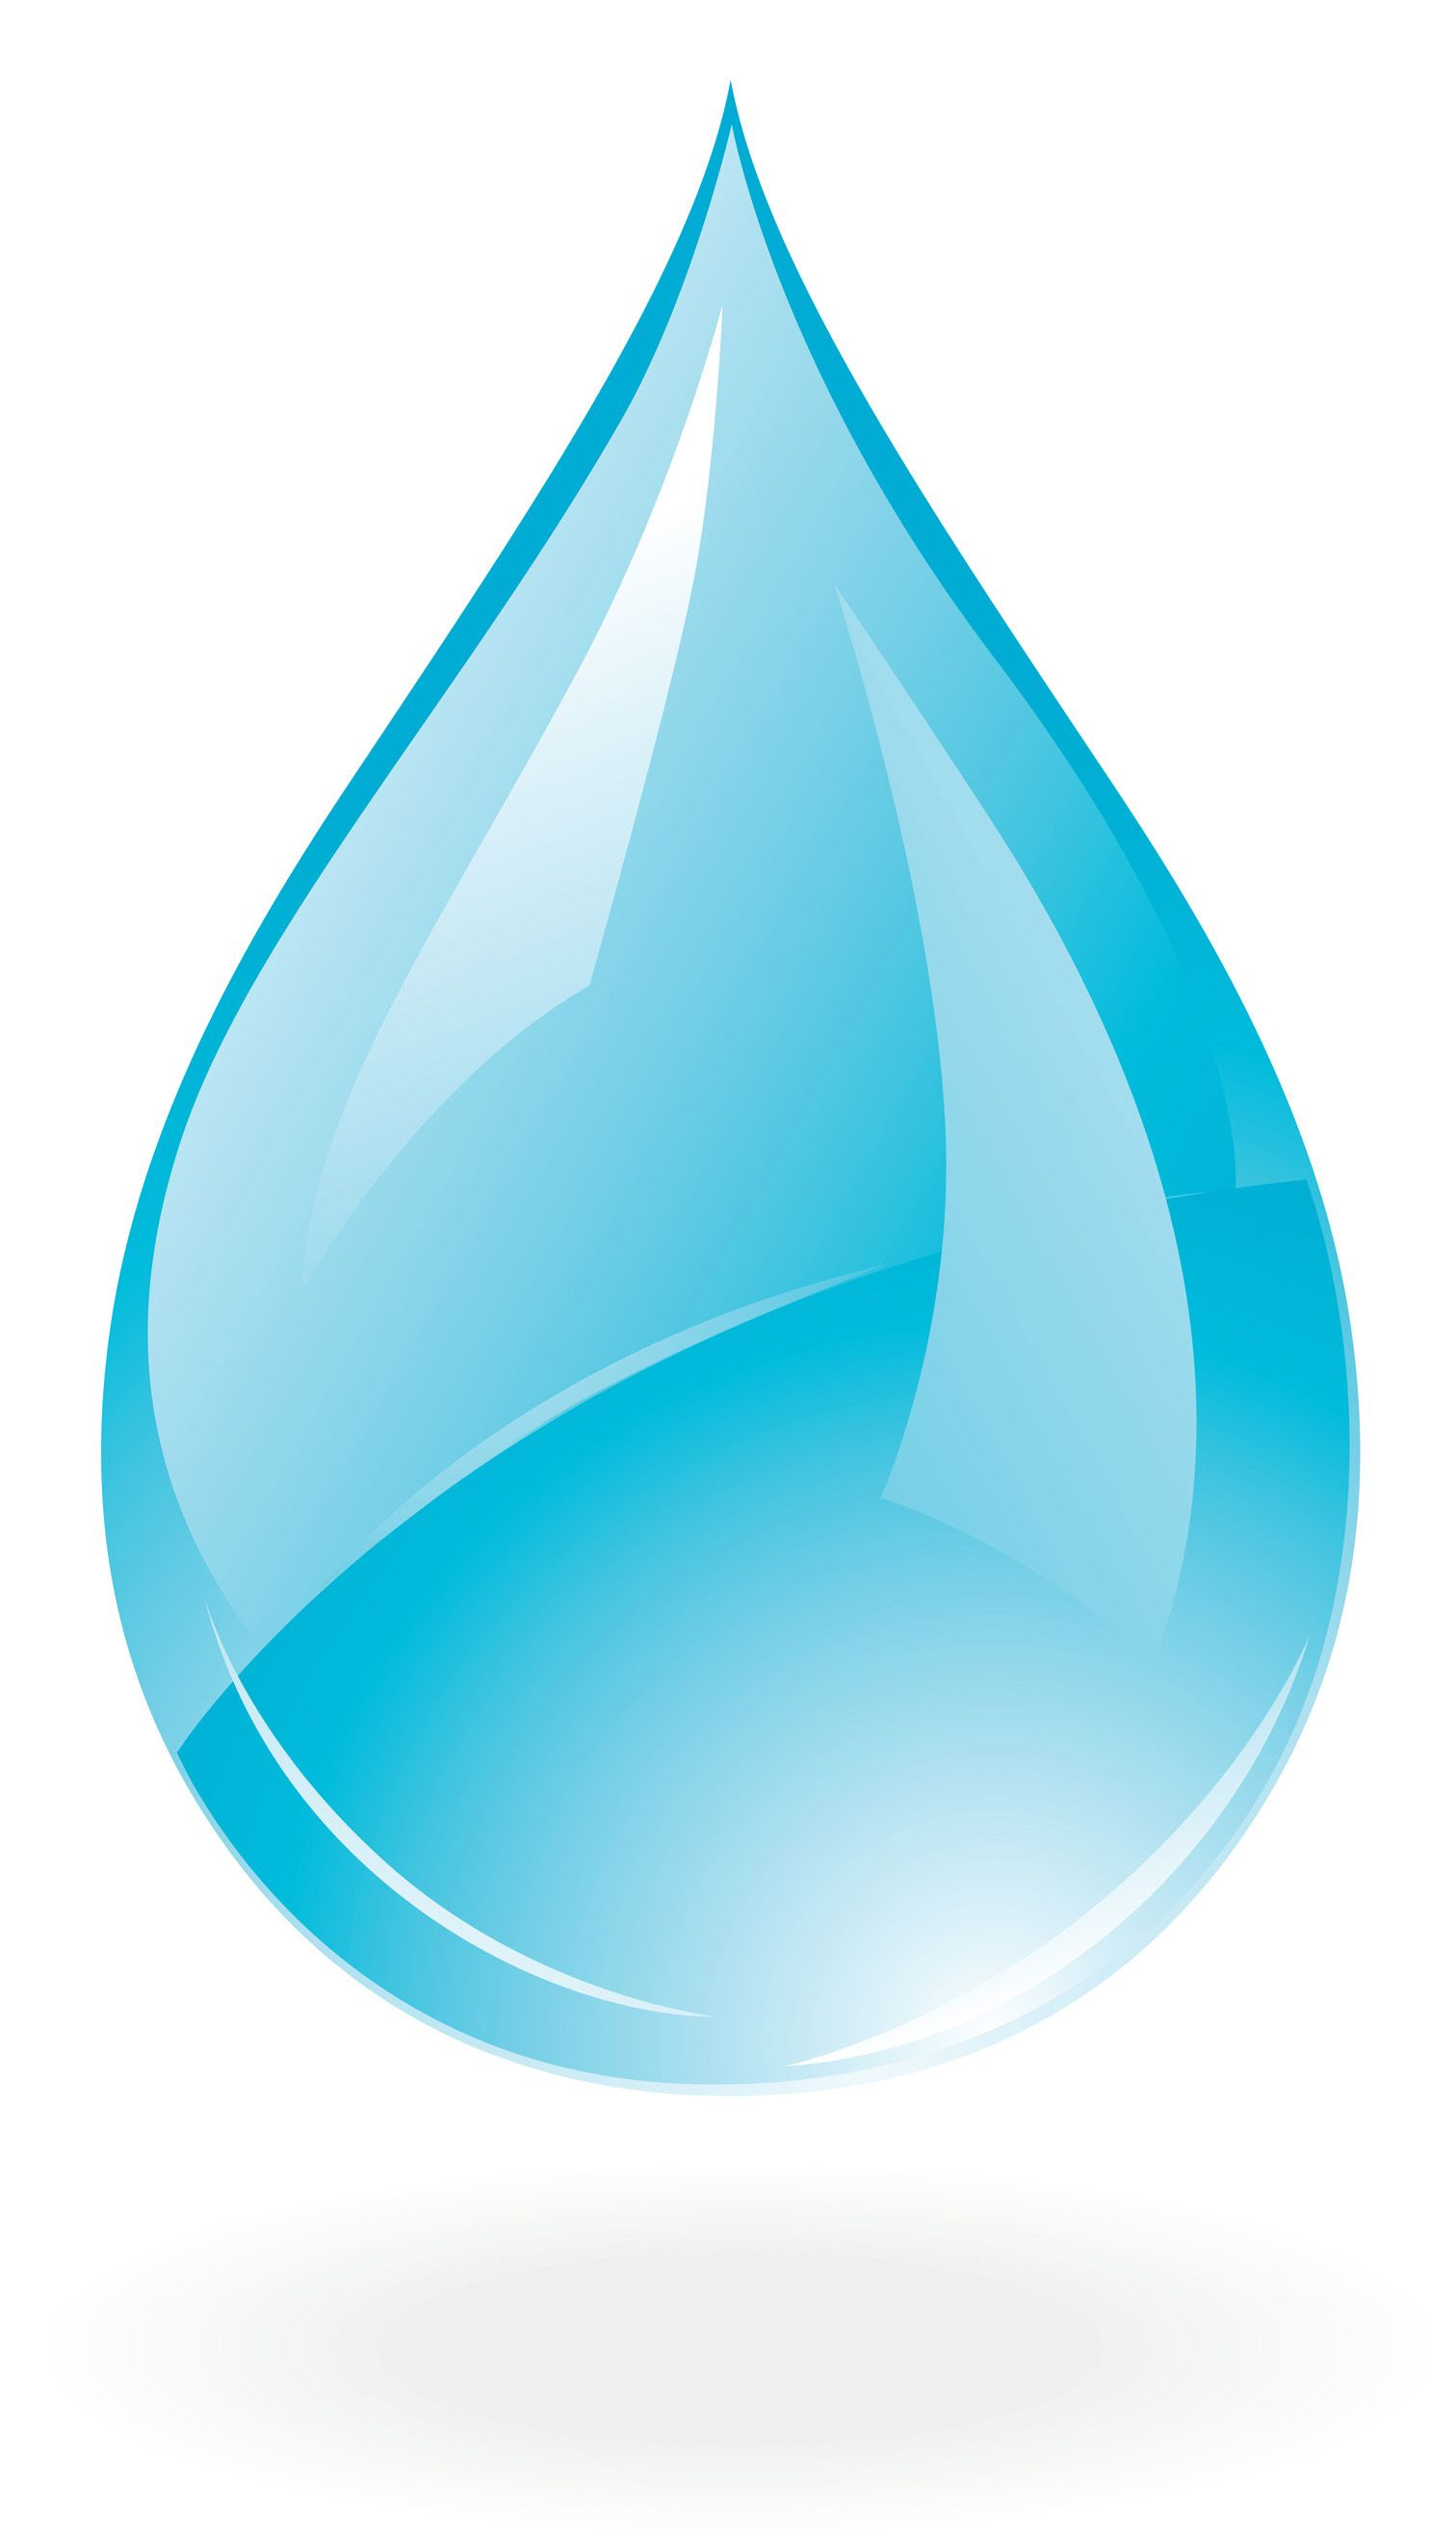 Water drop psd planning. Drops clipart image royalty free stock